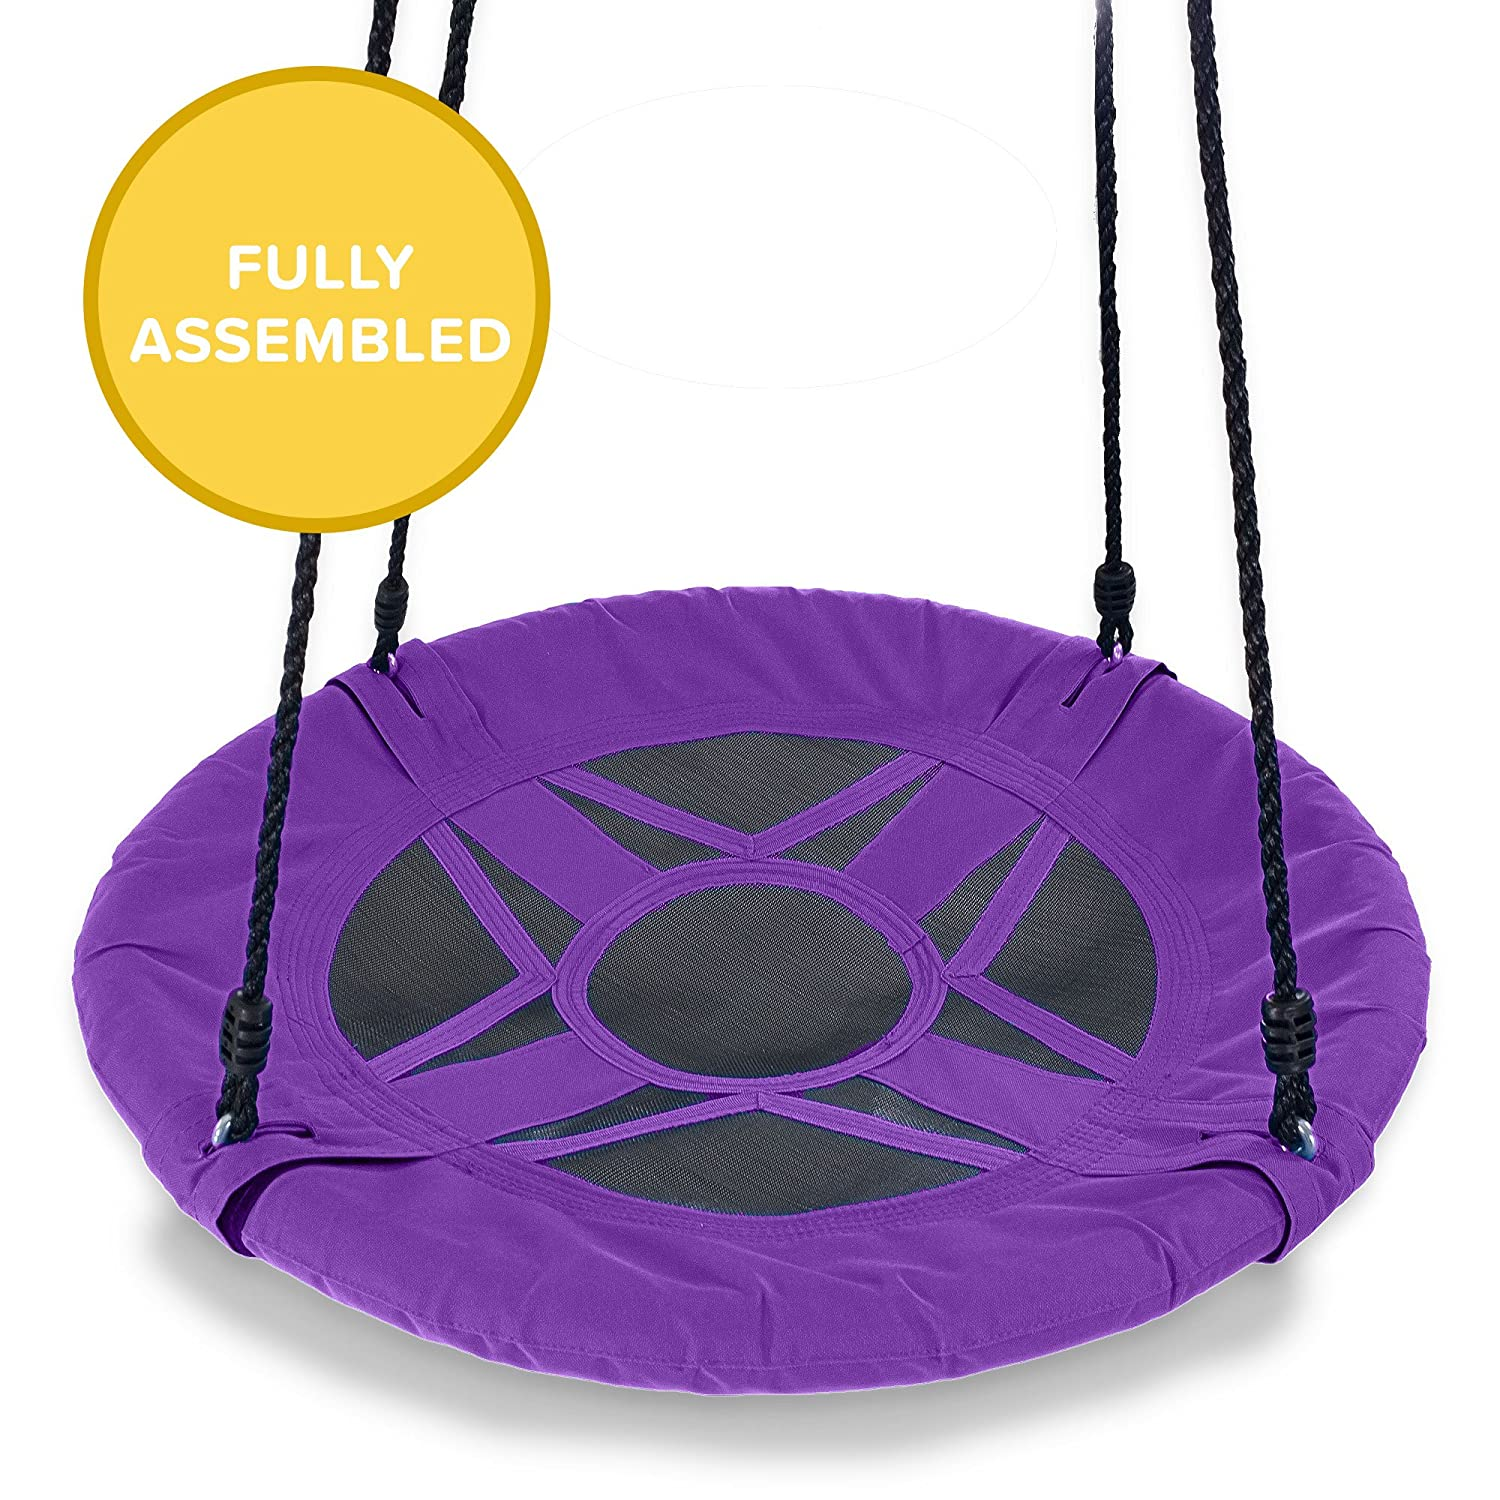 Play Platoon Flying Saucer Tree Swing - 400 lb Weight Capacity, Fully Assembled, Easy to Install Easy to Install (Dark Blue)